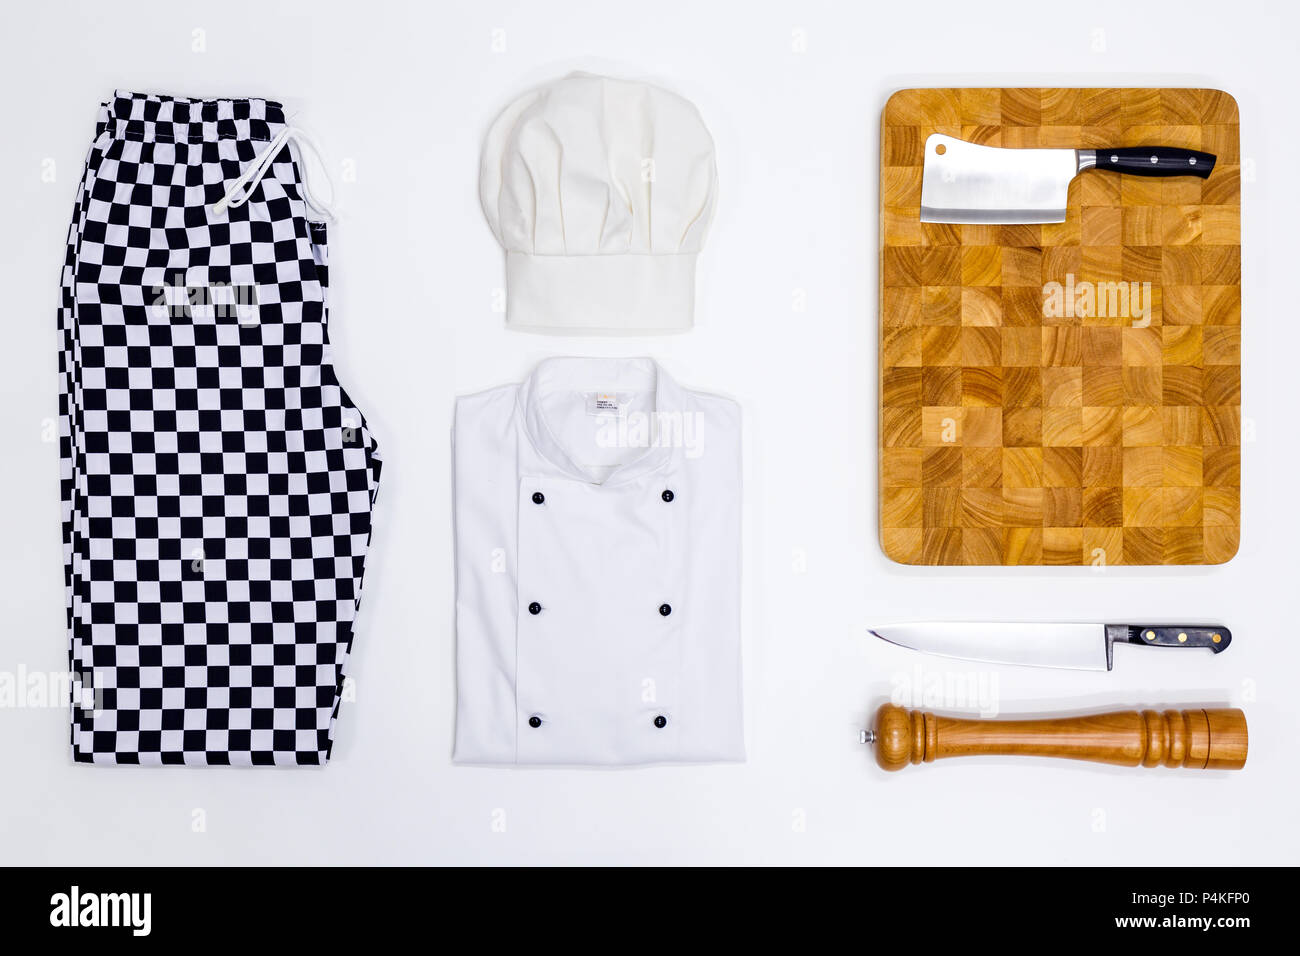 A flat lay arrangement of Chef whites uniform and equipment. - Stock Image